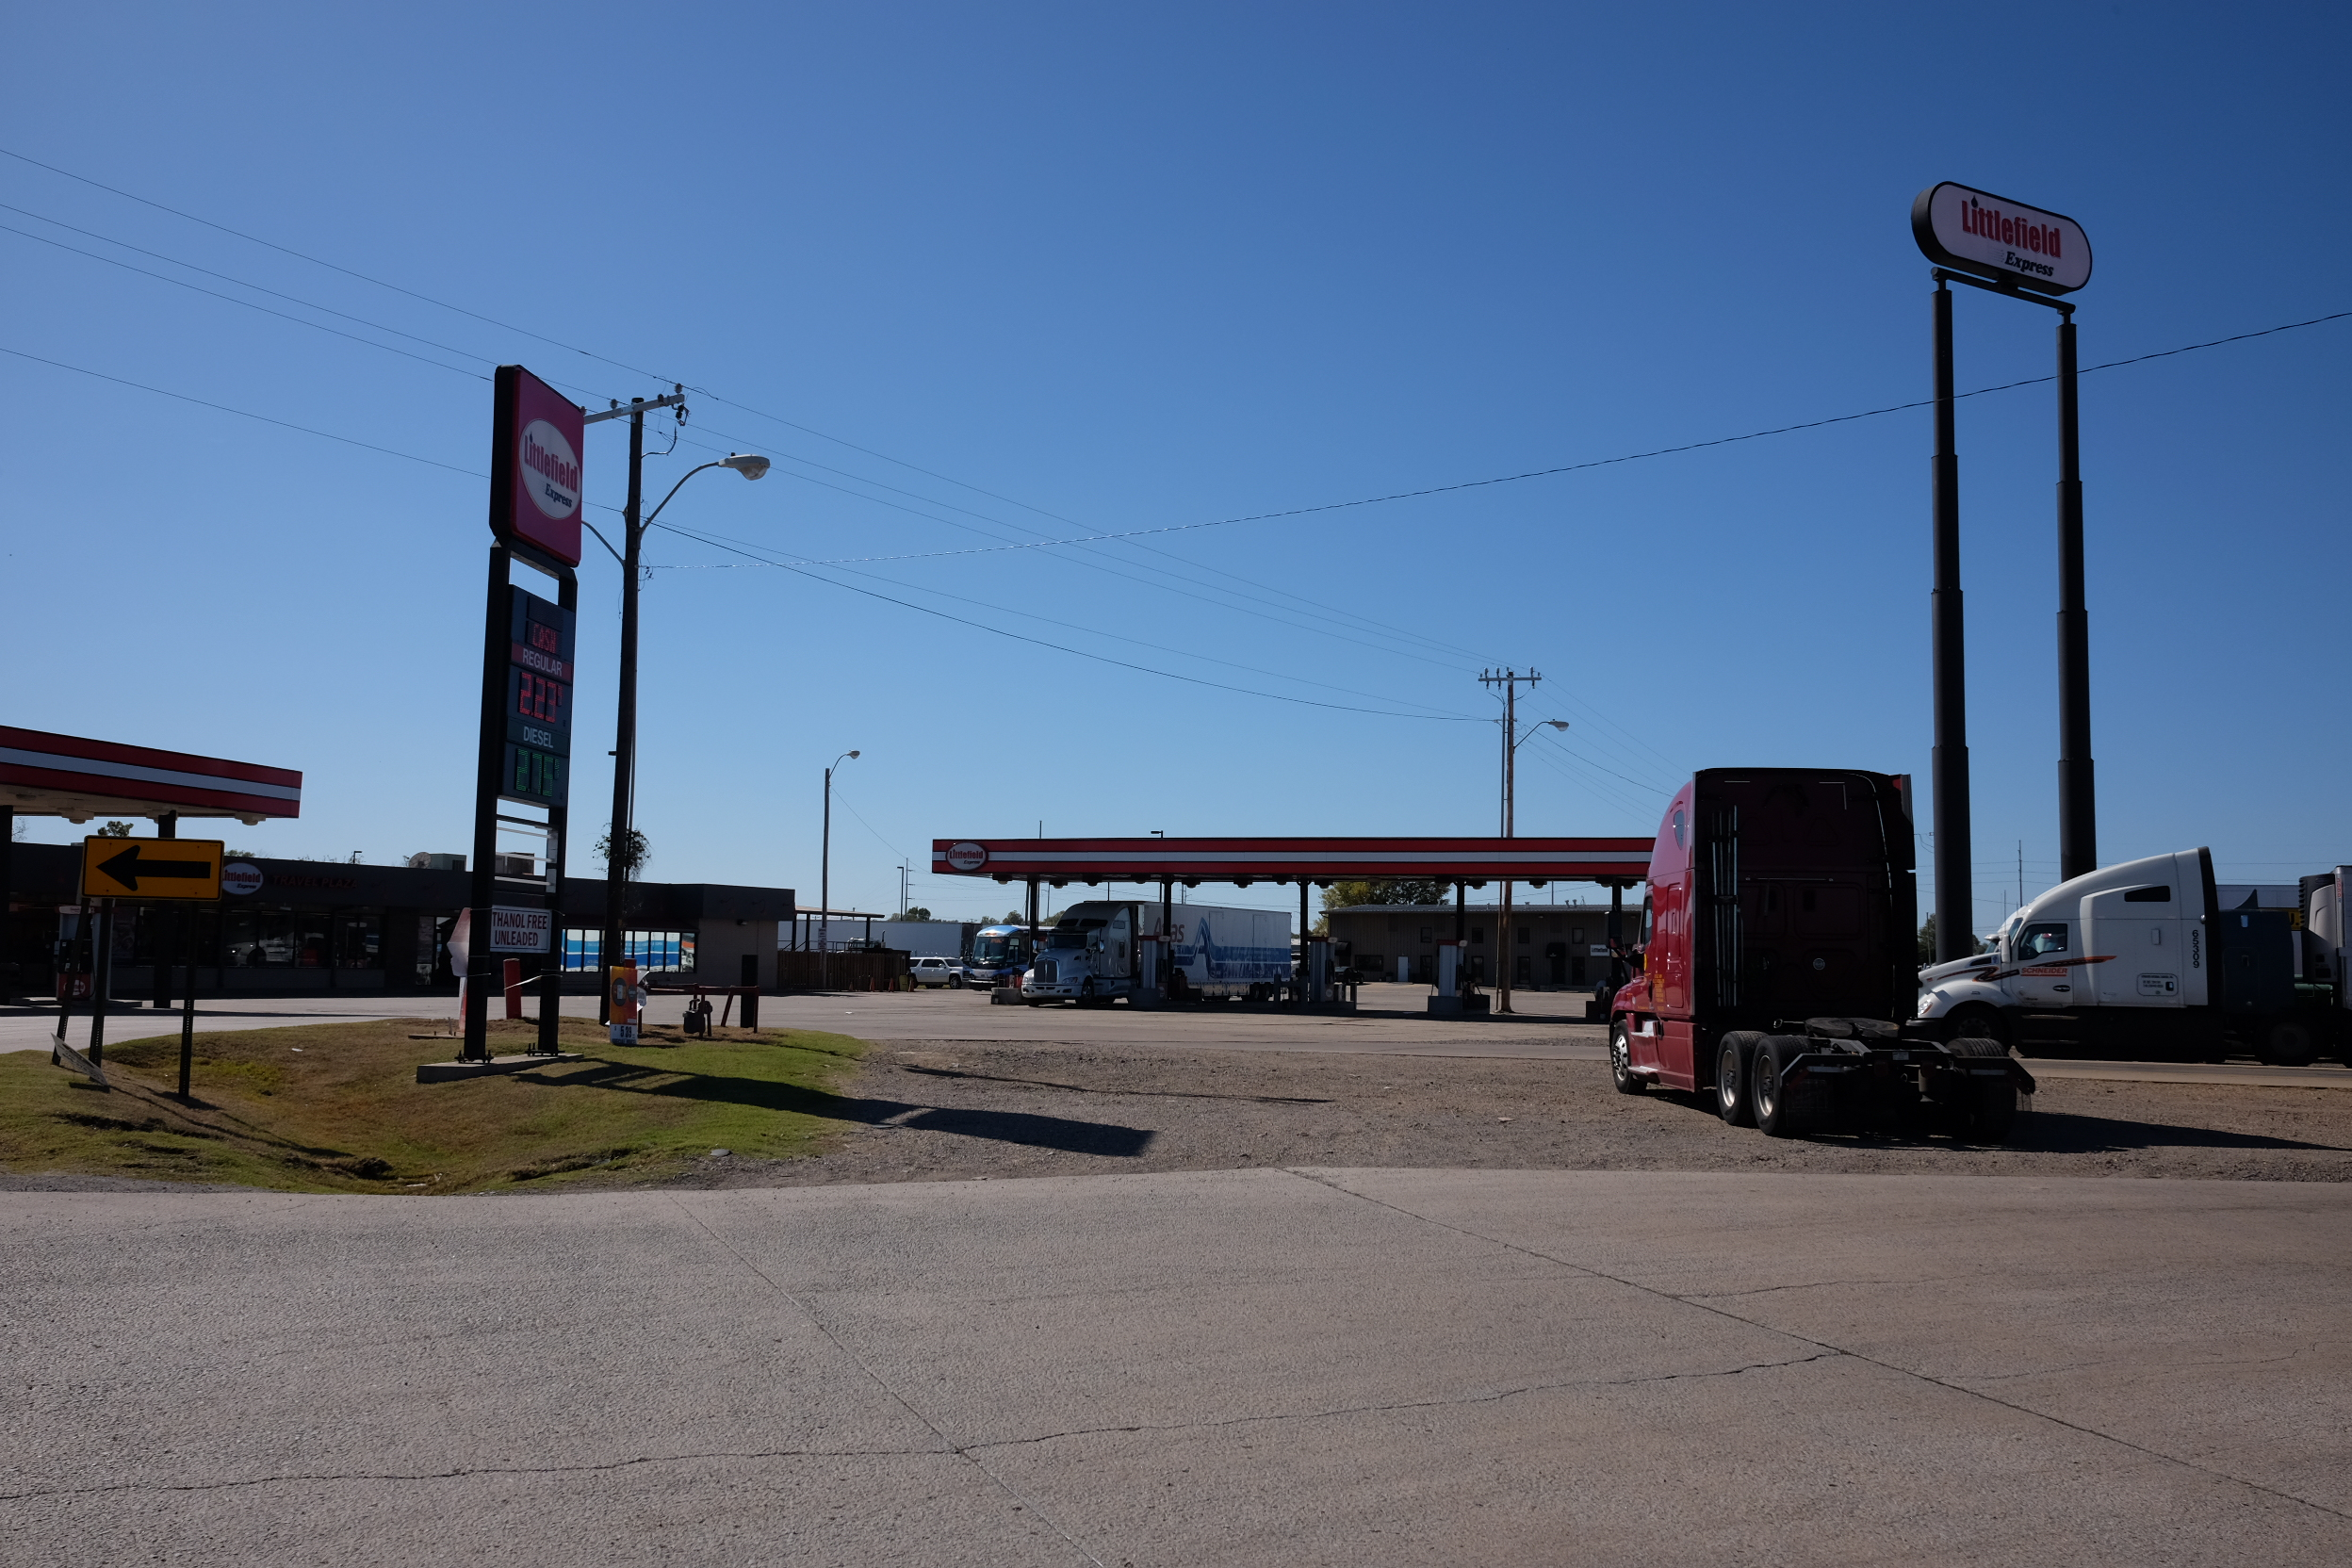 Littlefield Express 2 Travel Plaza. My ground zero for Fort Smith